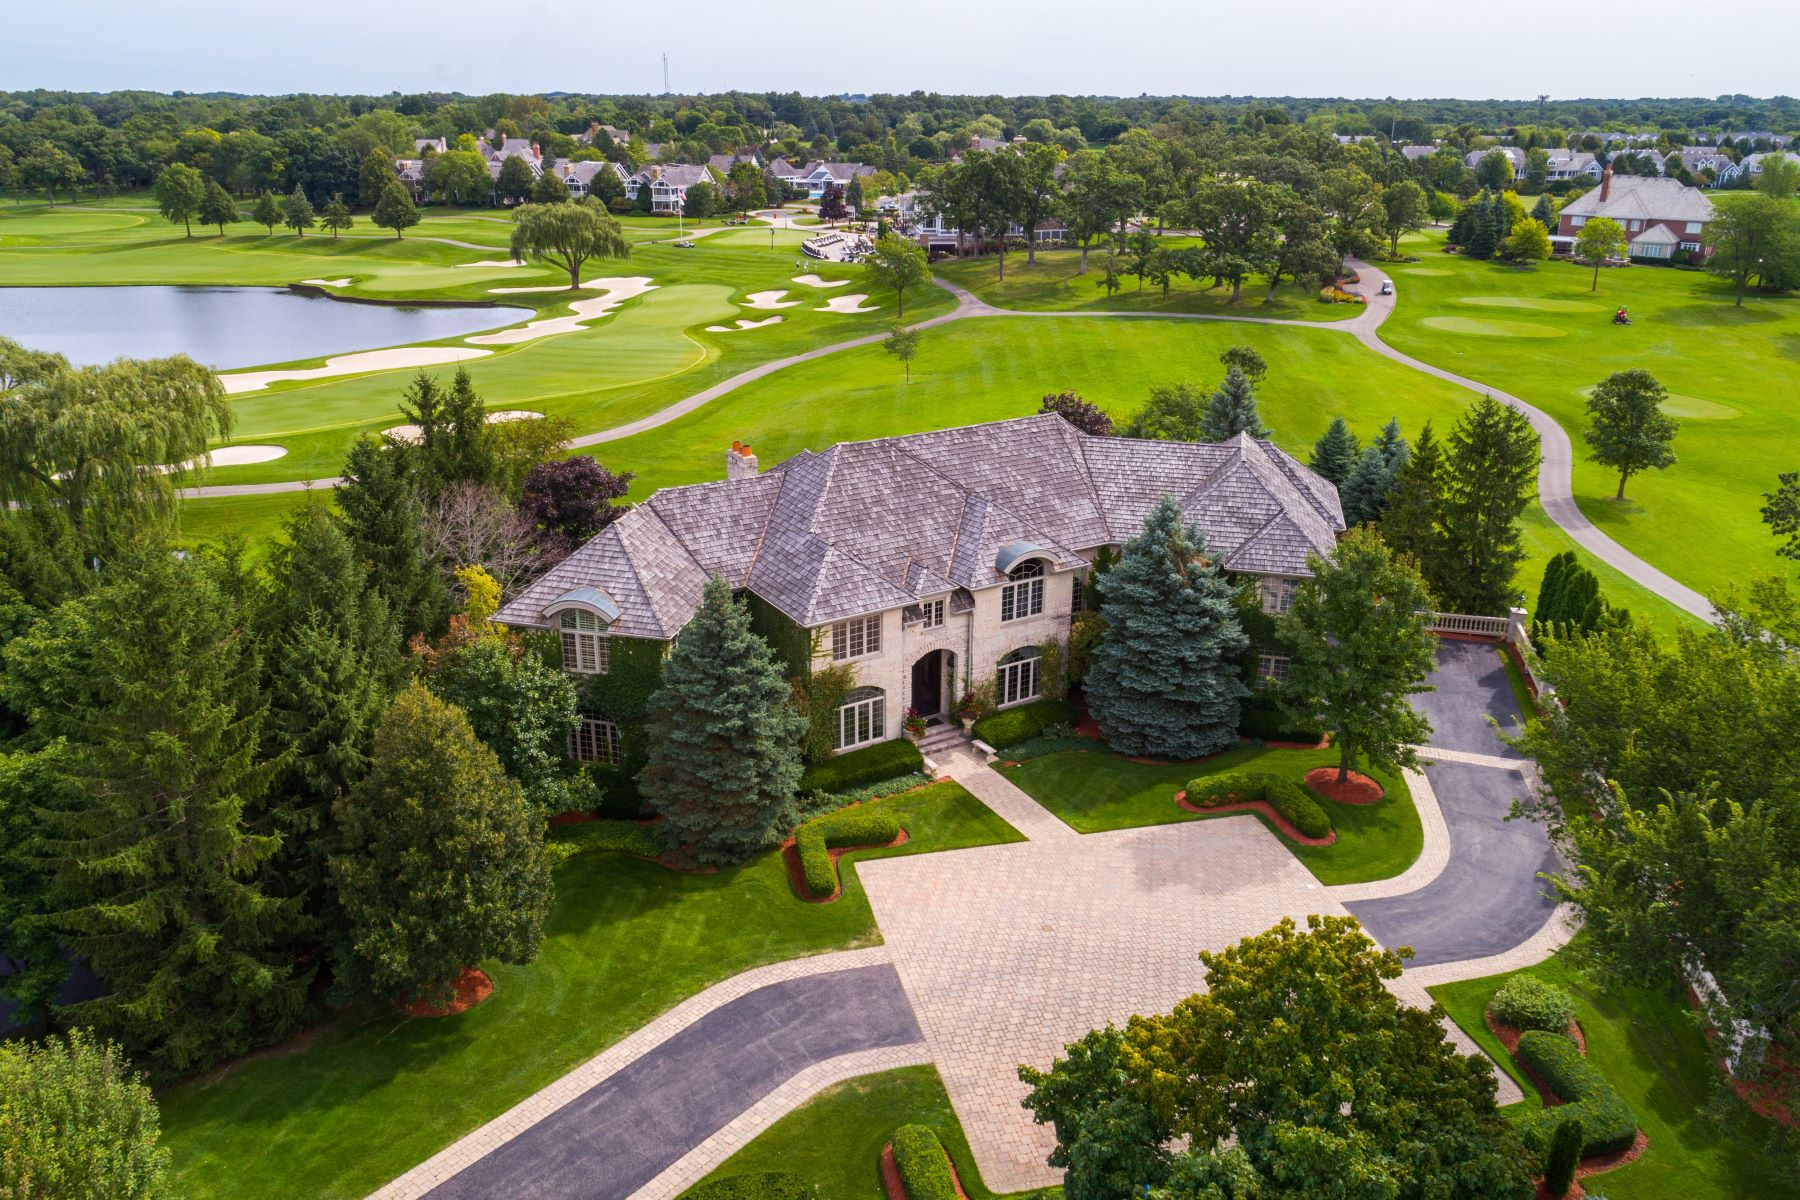 Single Family Homes for Active at Artful Graystone Manor 14 Kensington Drive North Barrington, Illinois 60010 United States